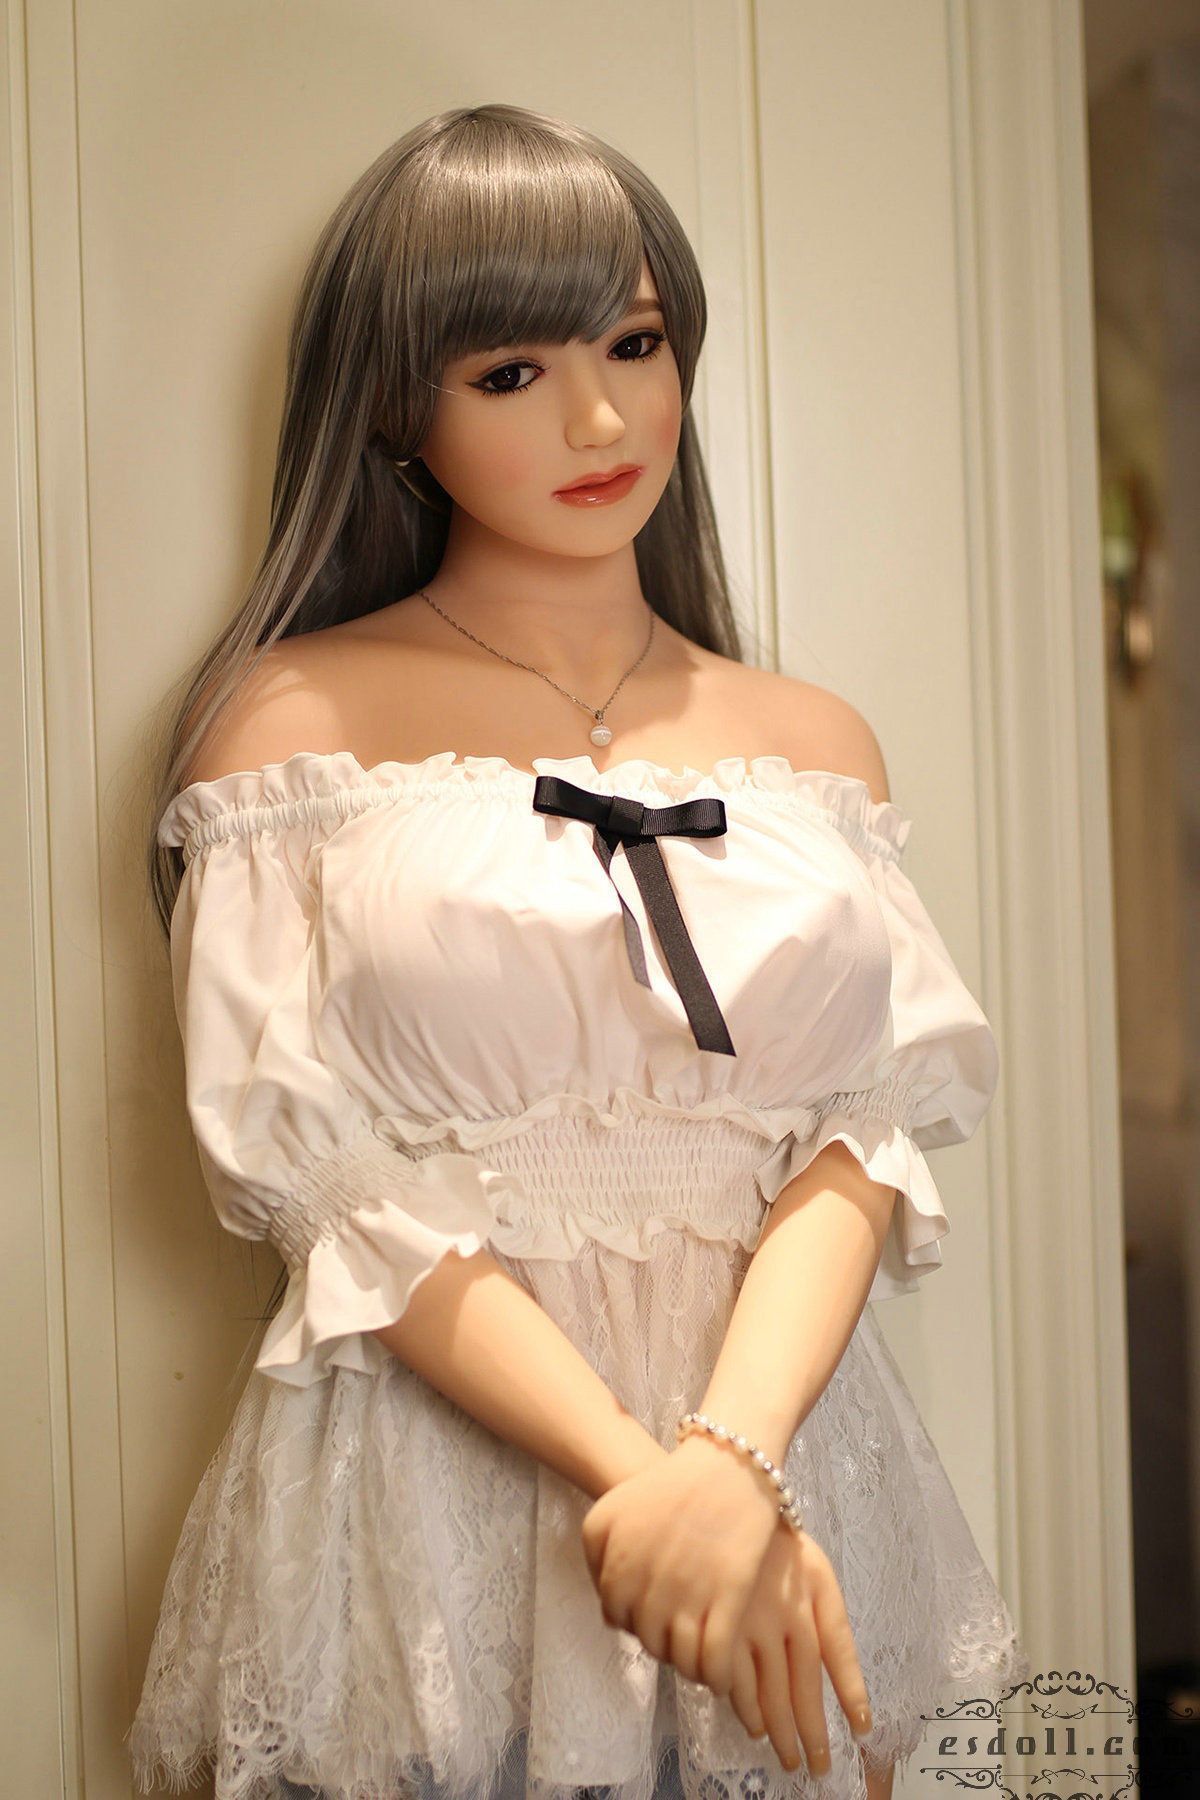 165cm 5.41ft Gina sex doll - 9